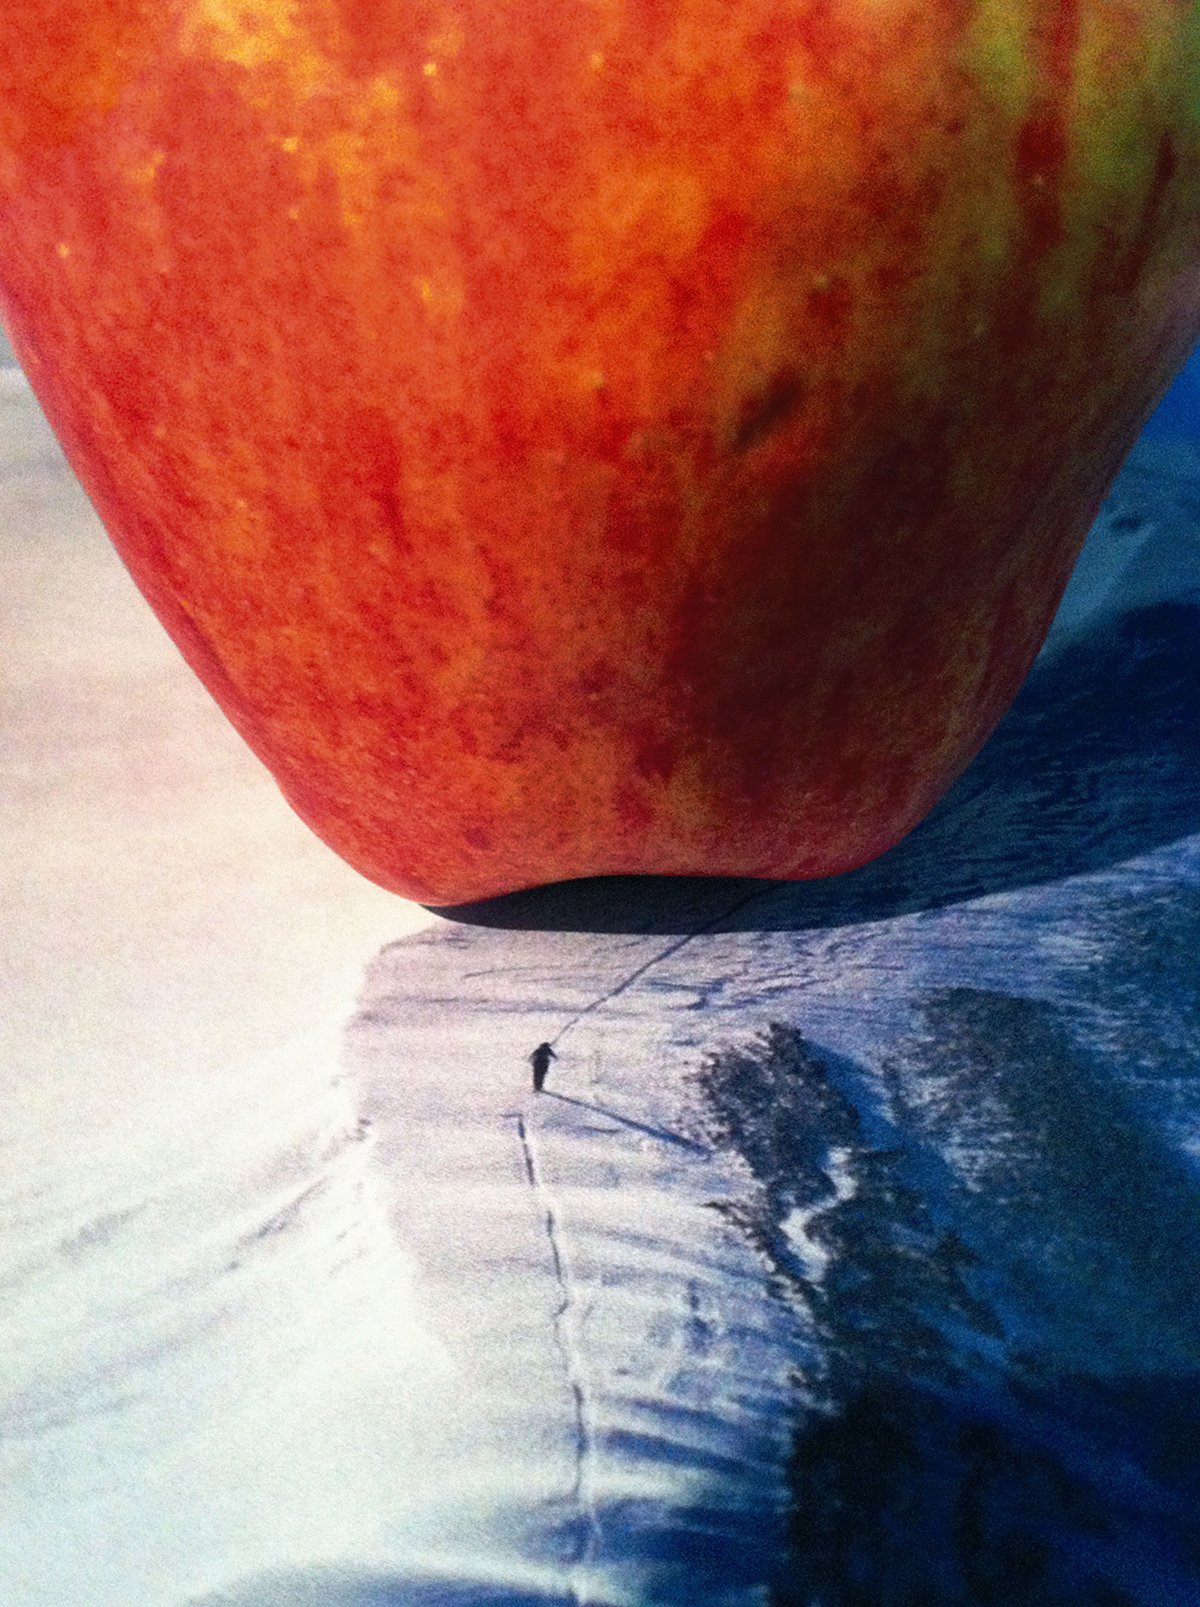 Nina Katchadourian, 'Mountain Climbers (Apple),' 2011. From 'Seat Assignment,' 2010-ongoing.